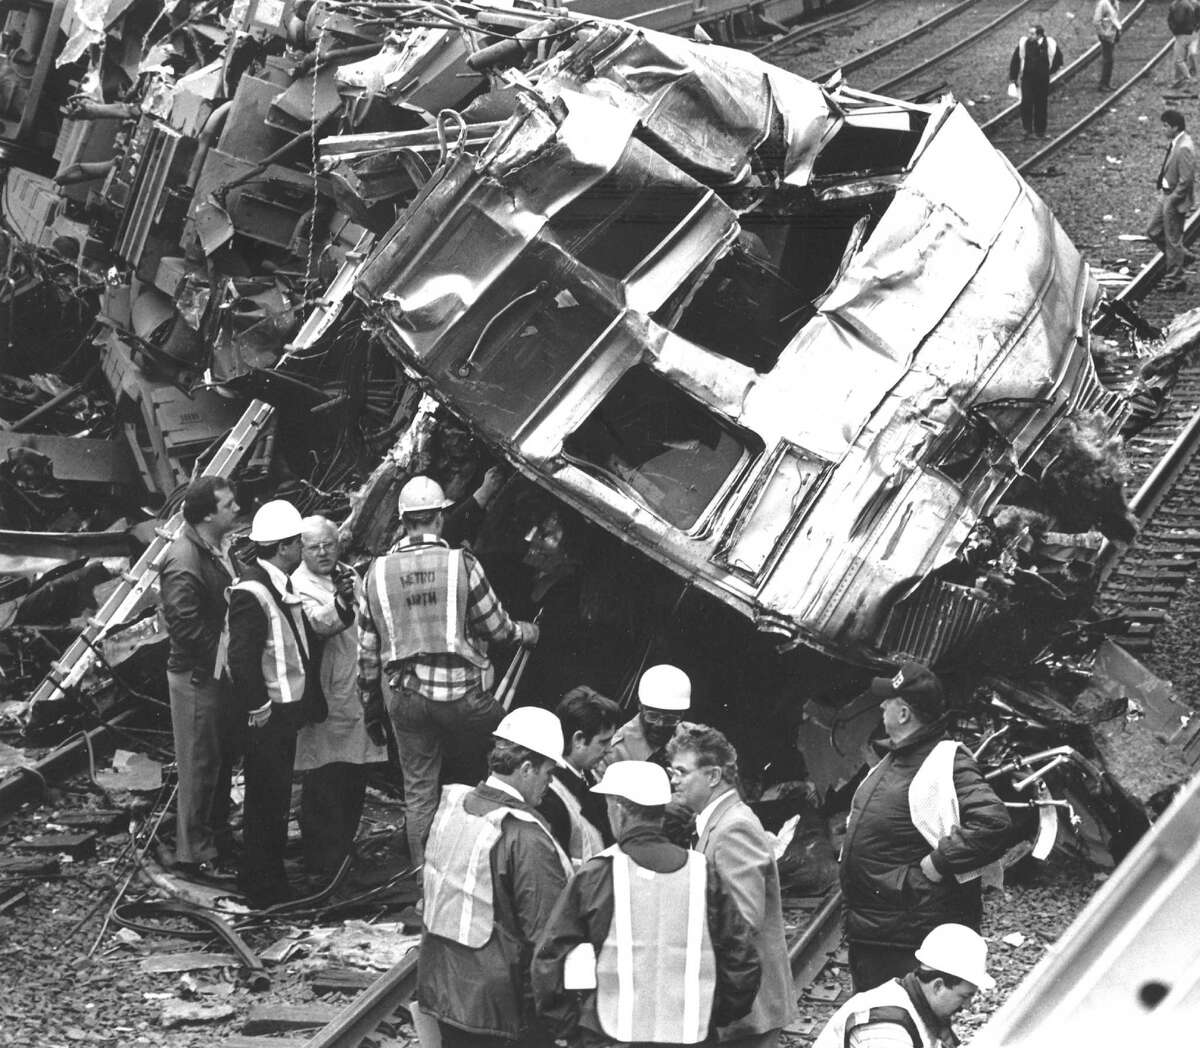 A rail engineer from Stamford, Raymond Hunter, 42, died when his train collided with a stopped train in Mount Vernon, N.Y. in April, 1988. Neither train was carrying passengers.